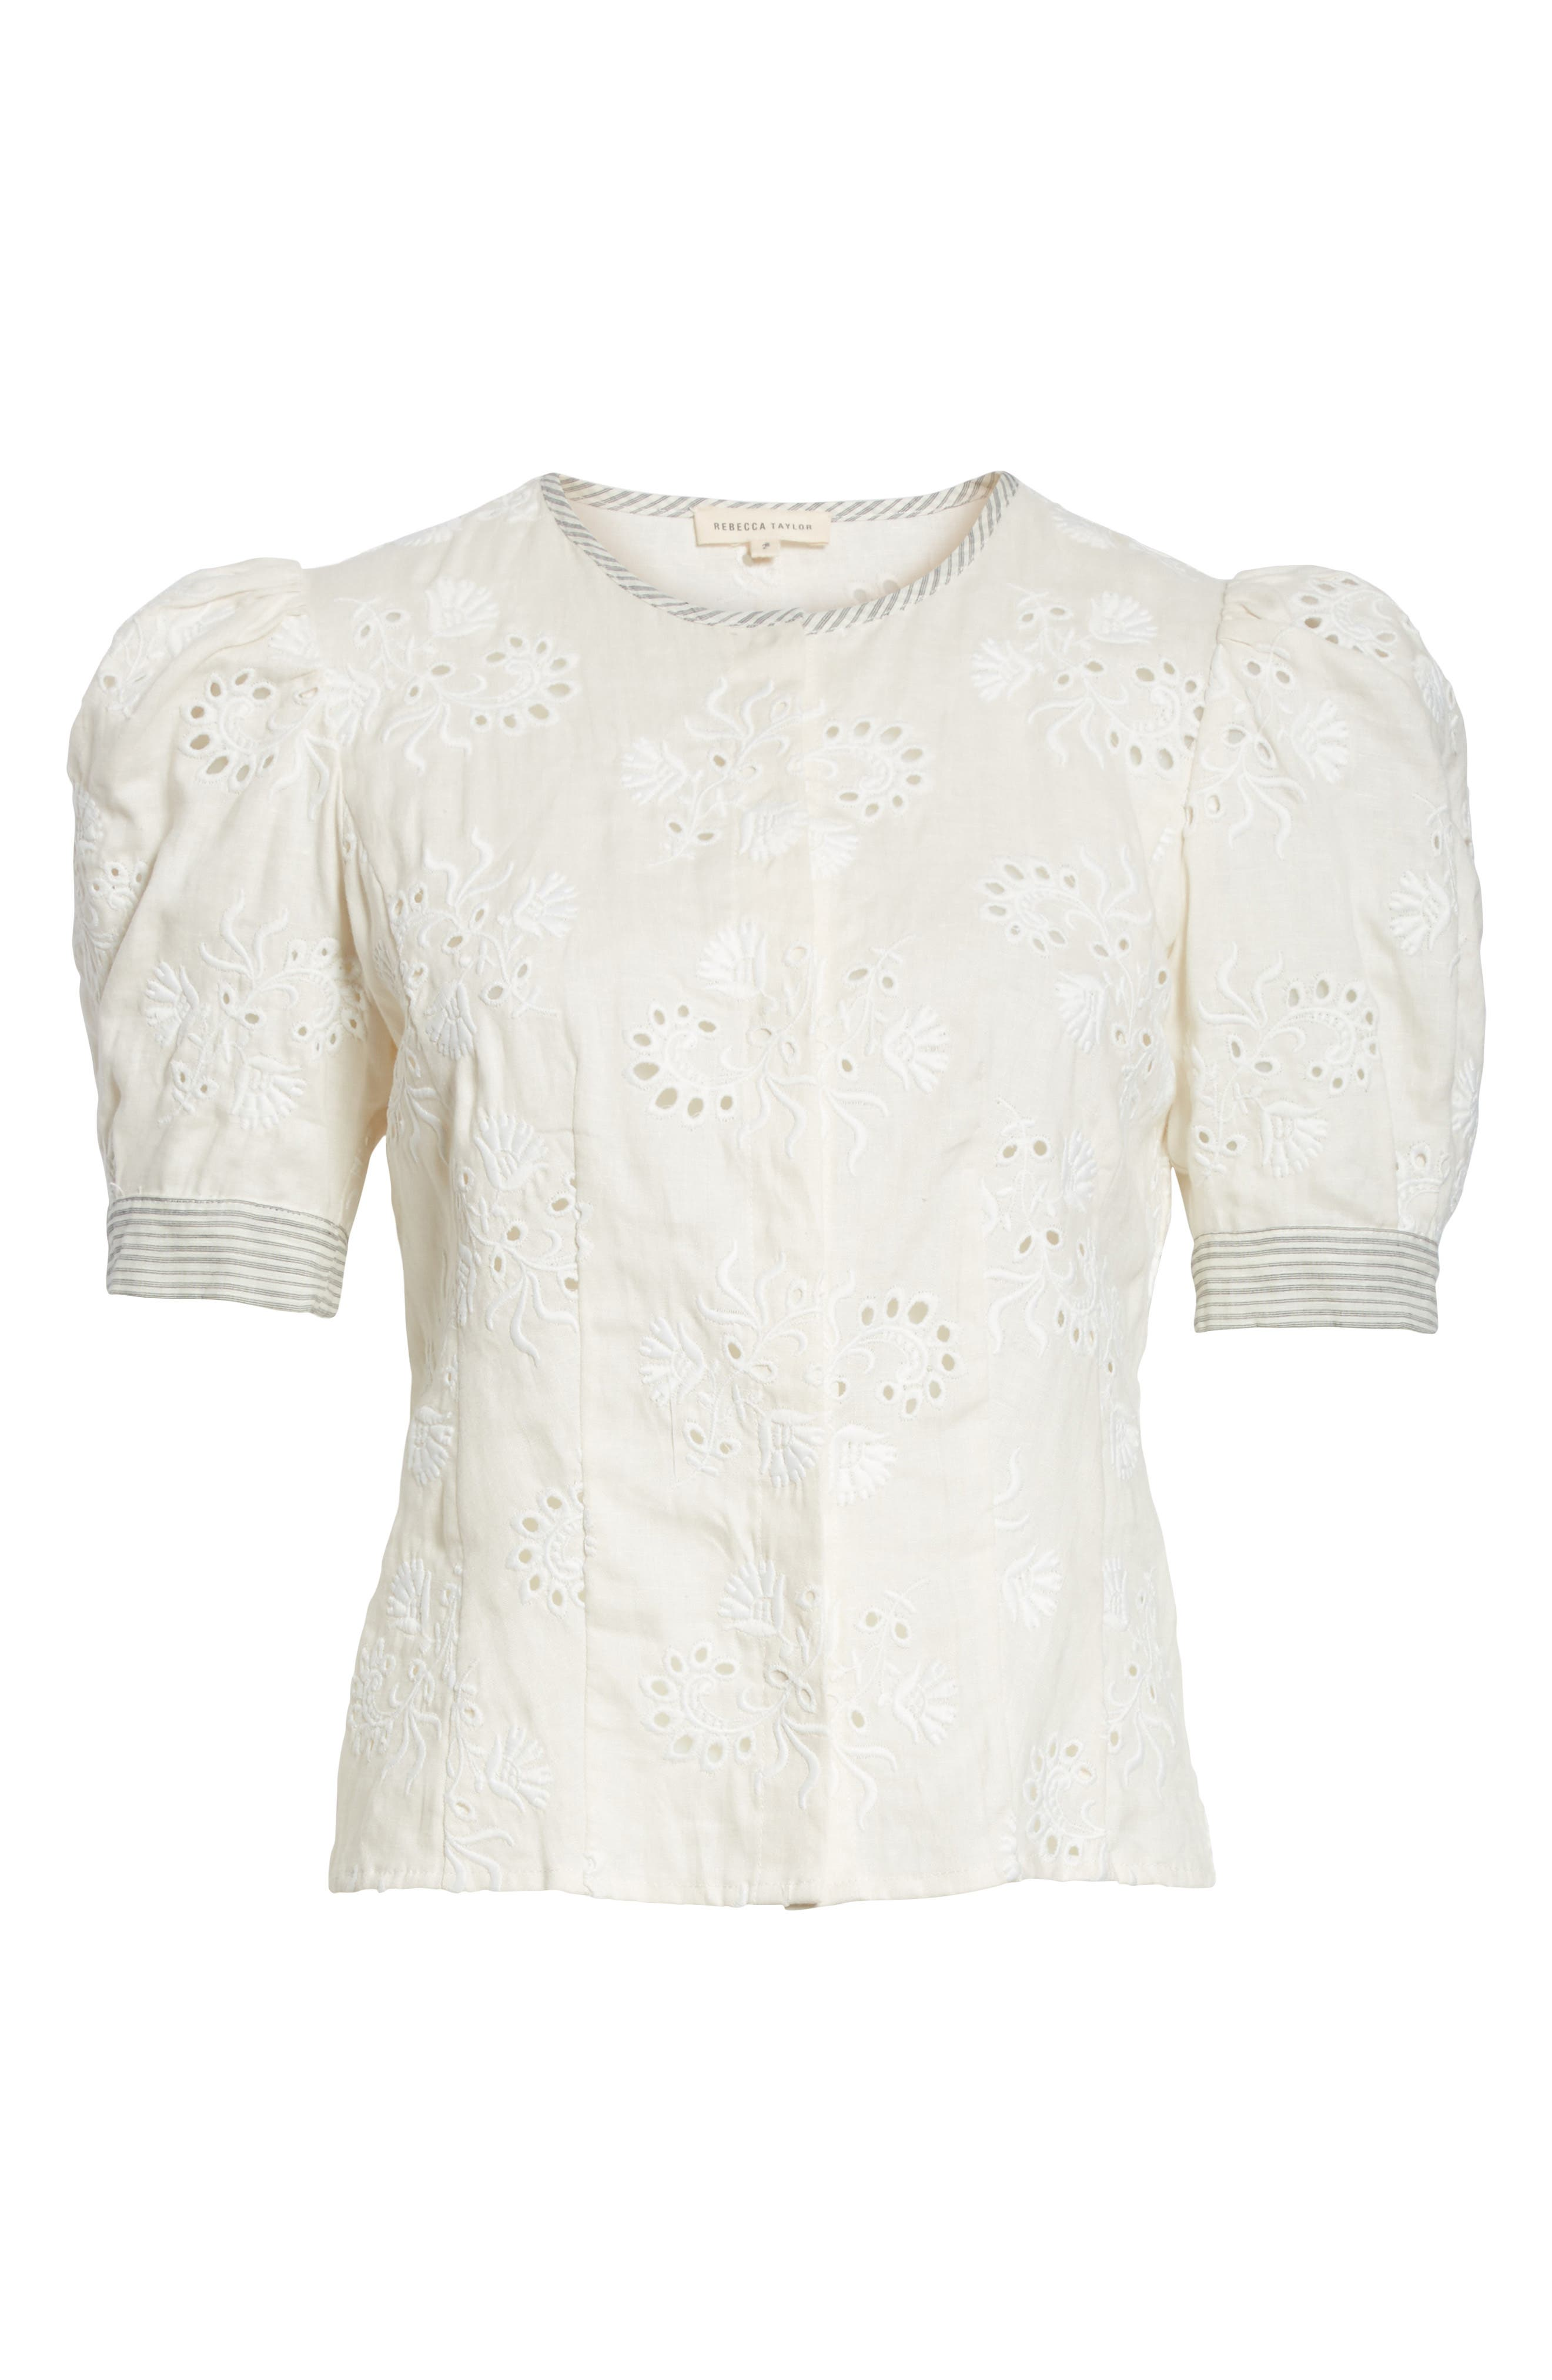 Garden Eyelet Linen Top,                             Alternate thumbnail 6, color,                             192